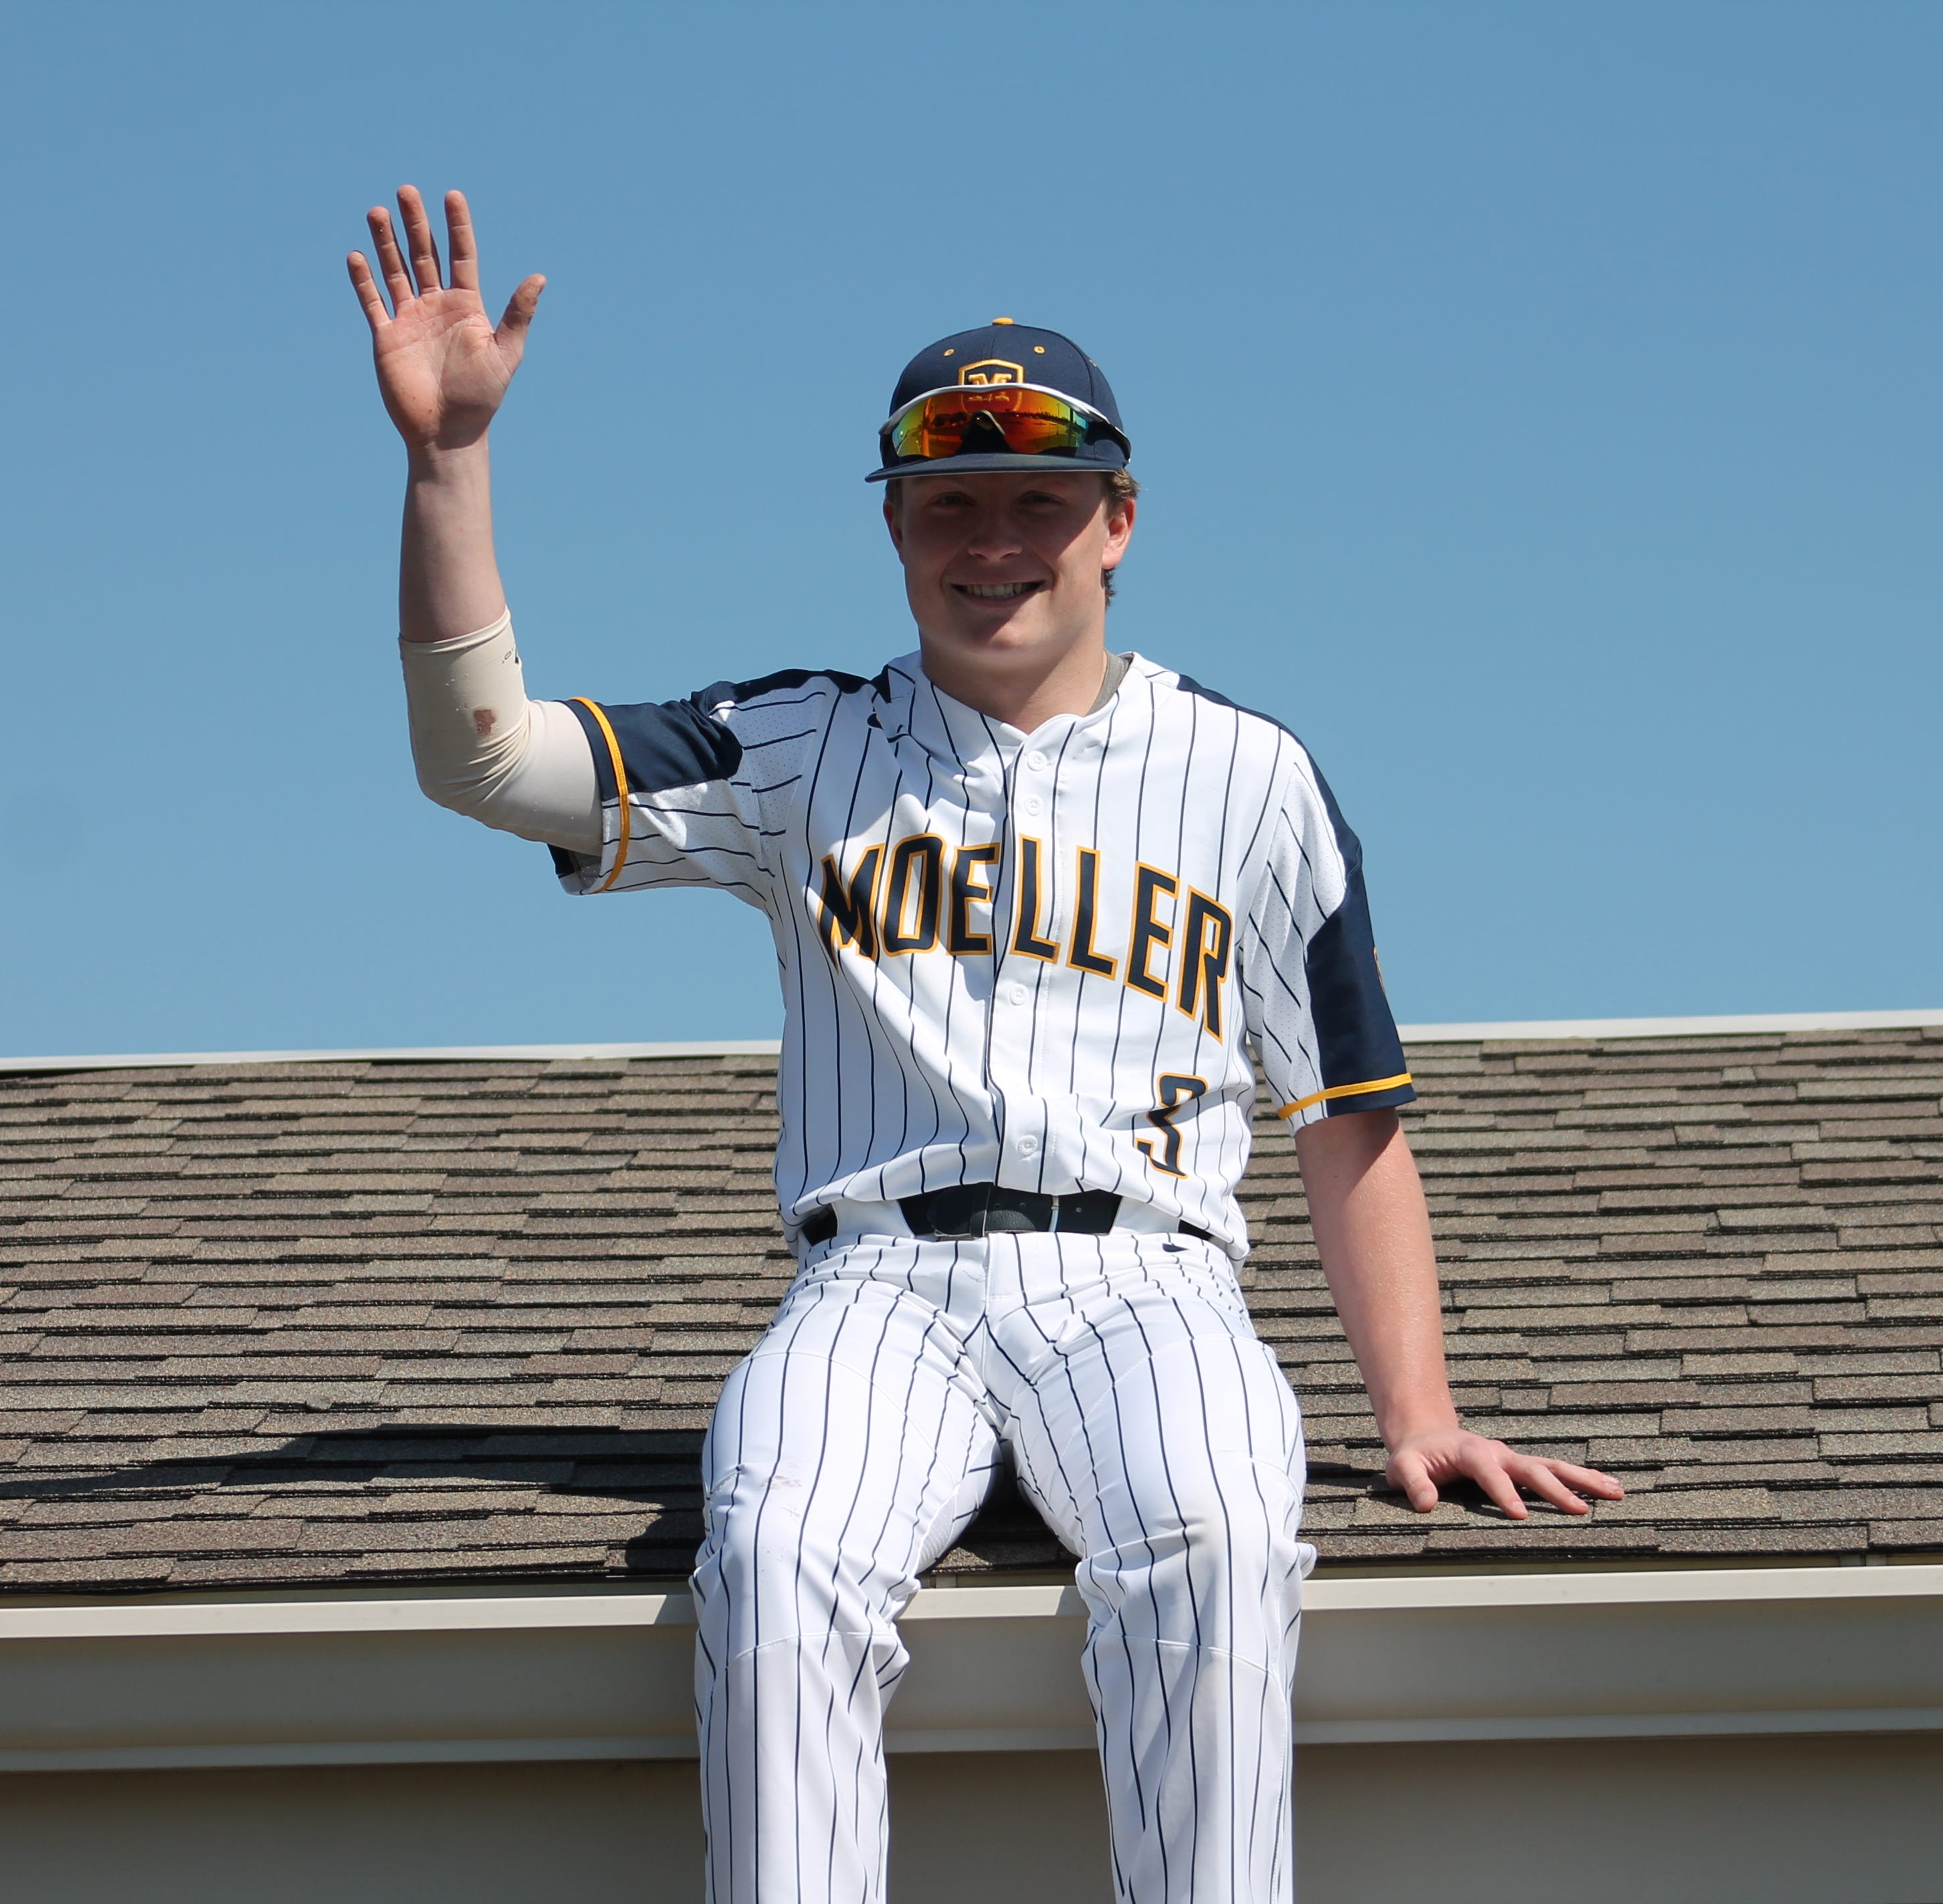 Moeller's Deyhle shows rare baseball perfection for Crusaders